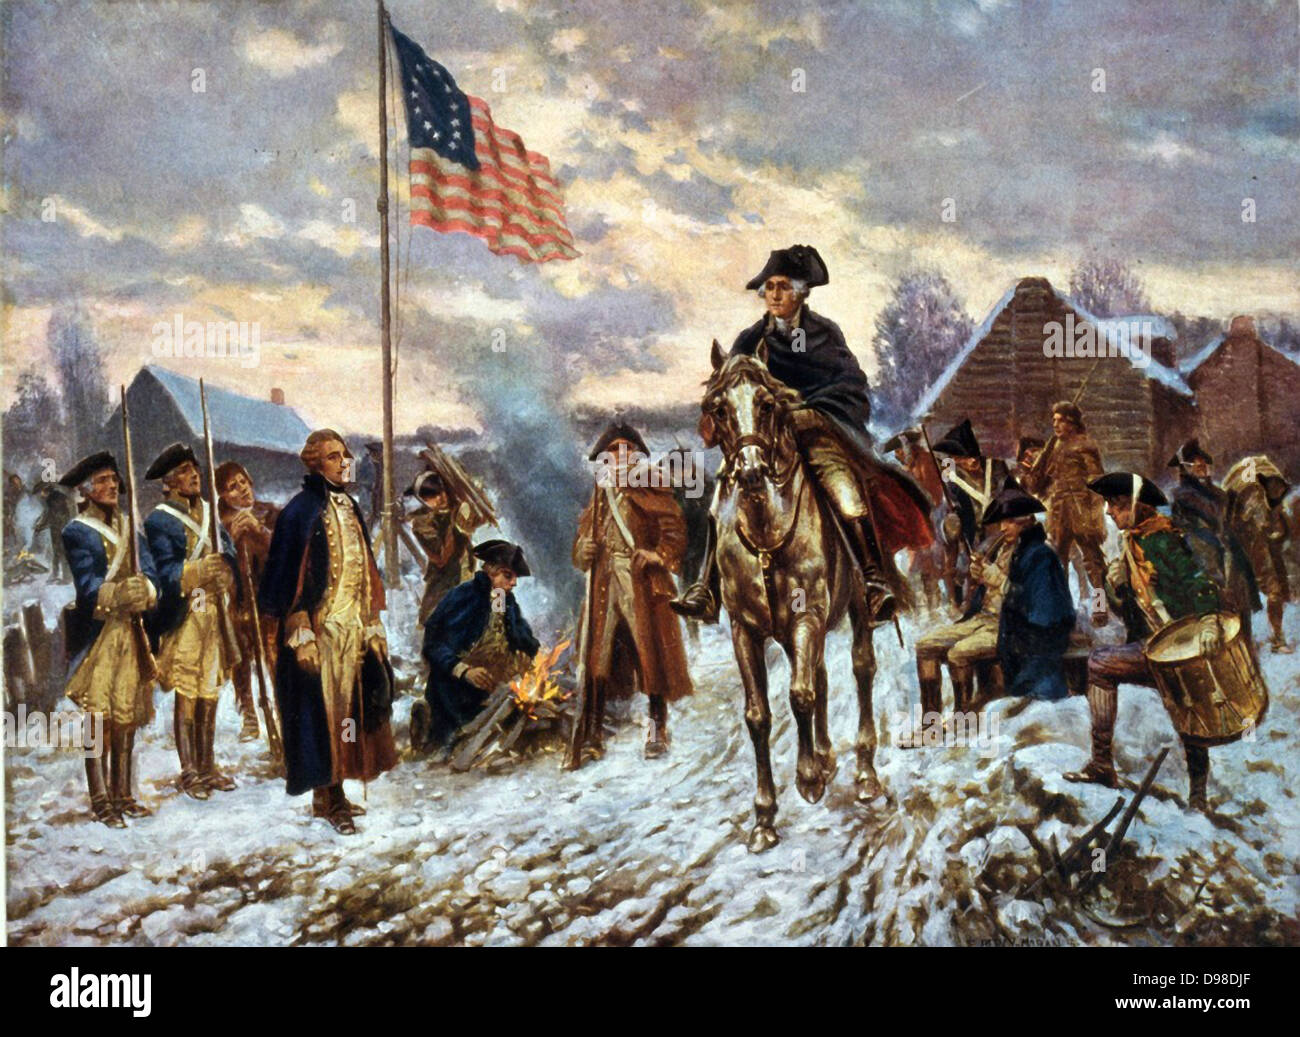 Revolutionary War 1775-1783 (American War of Independence): 'Washington at  Valley Forge', Pennsylvania, l December 1777 the